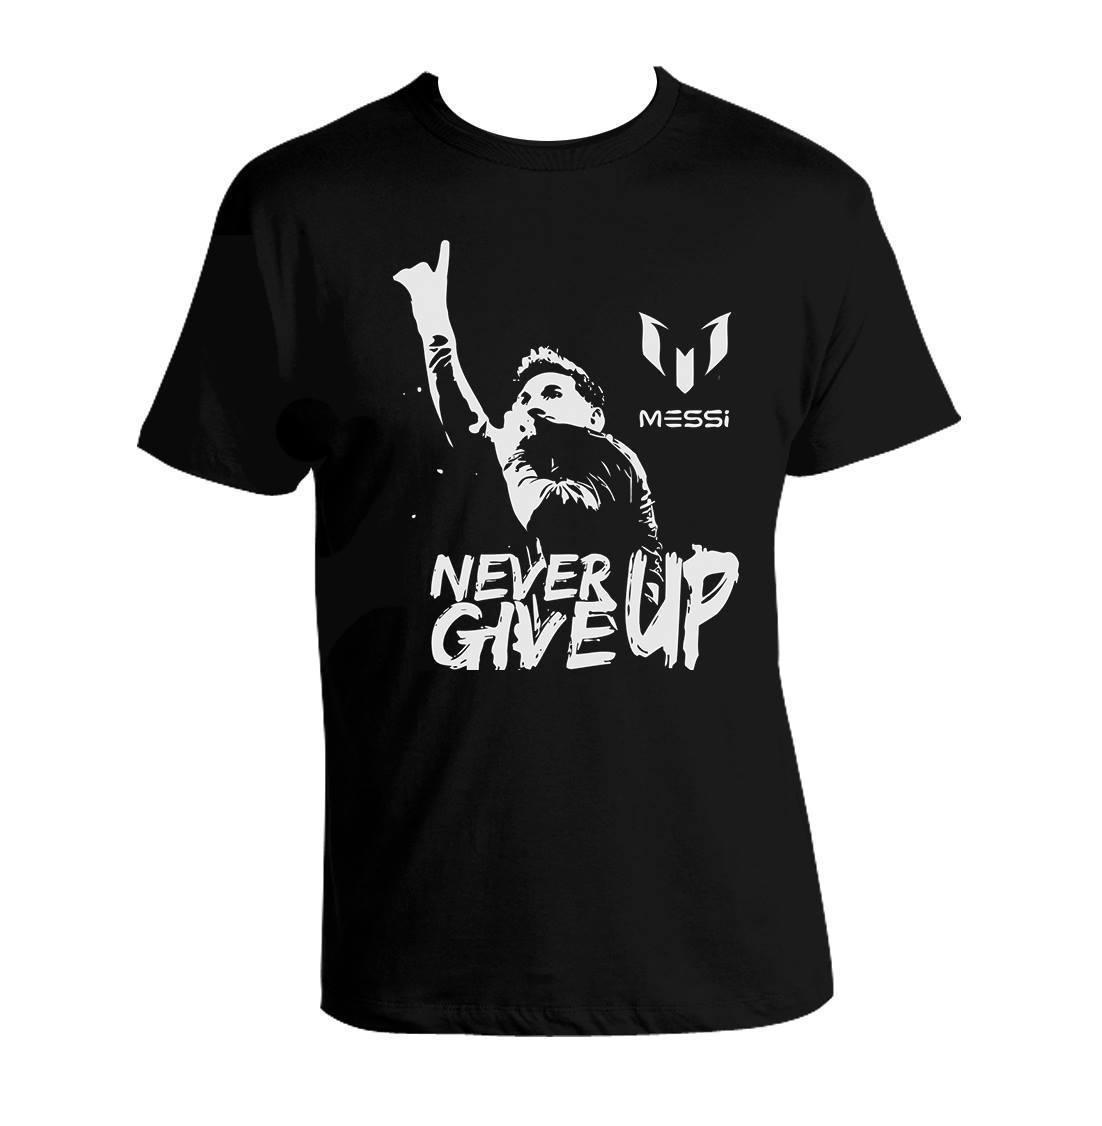 27d9eecfb Leo Messi NEVER GIVE UP T Shirt FC BARCELONA T Shirt MESSI 10 100% Cotton  UNISEXUnisex Funny Gift Casual Tee Political Tee Shirts Funny Political T  Shirts ...